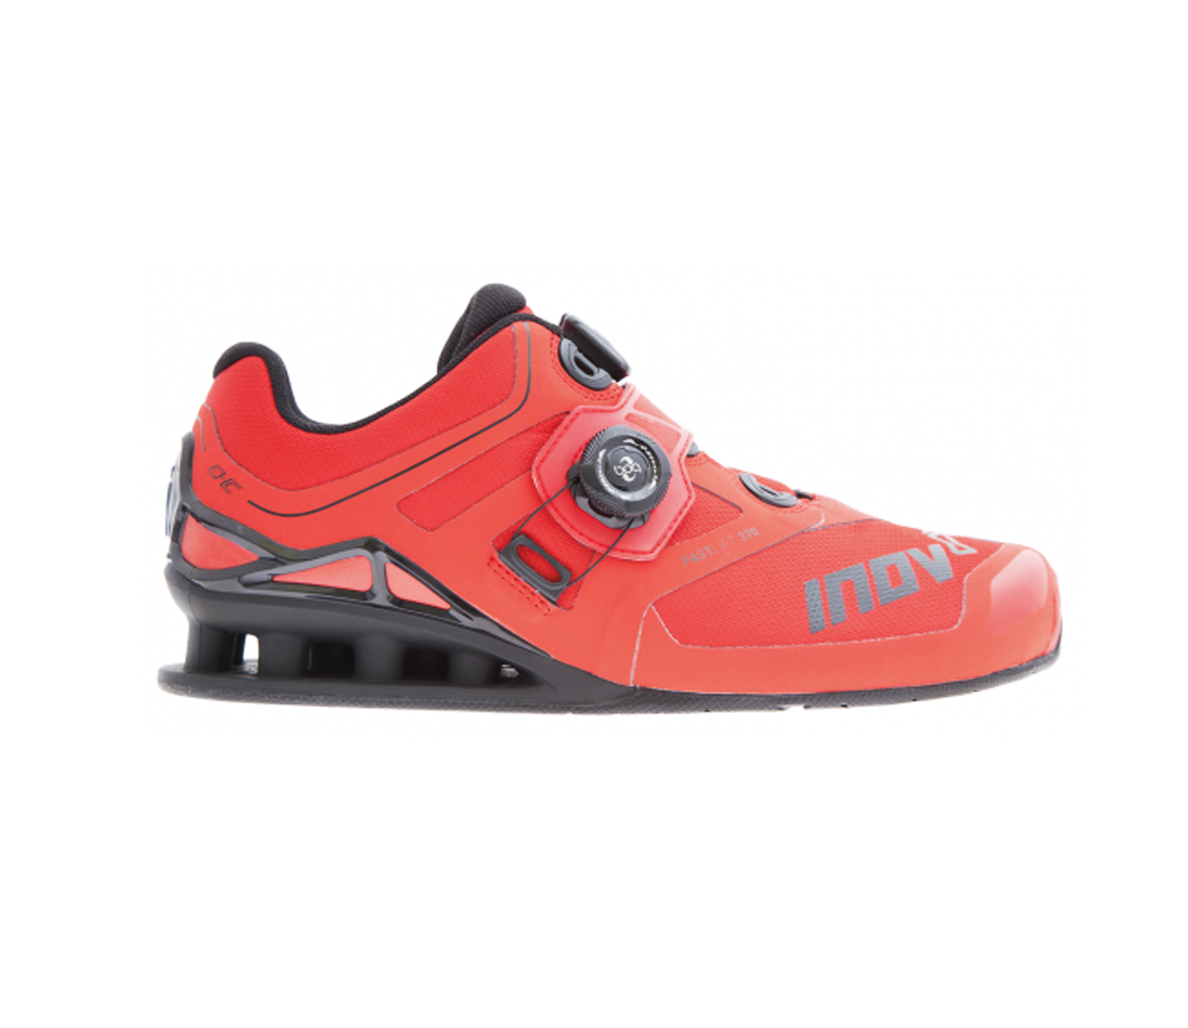 Best ShoesThe New For Olympic Weightlifting Powerlifting Pairs And sQChrtdx